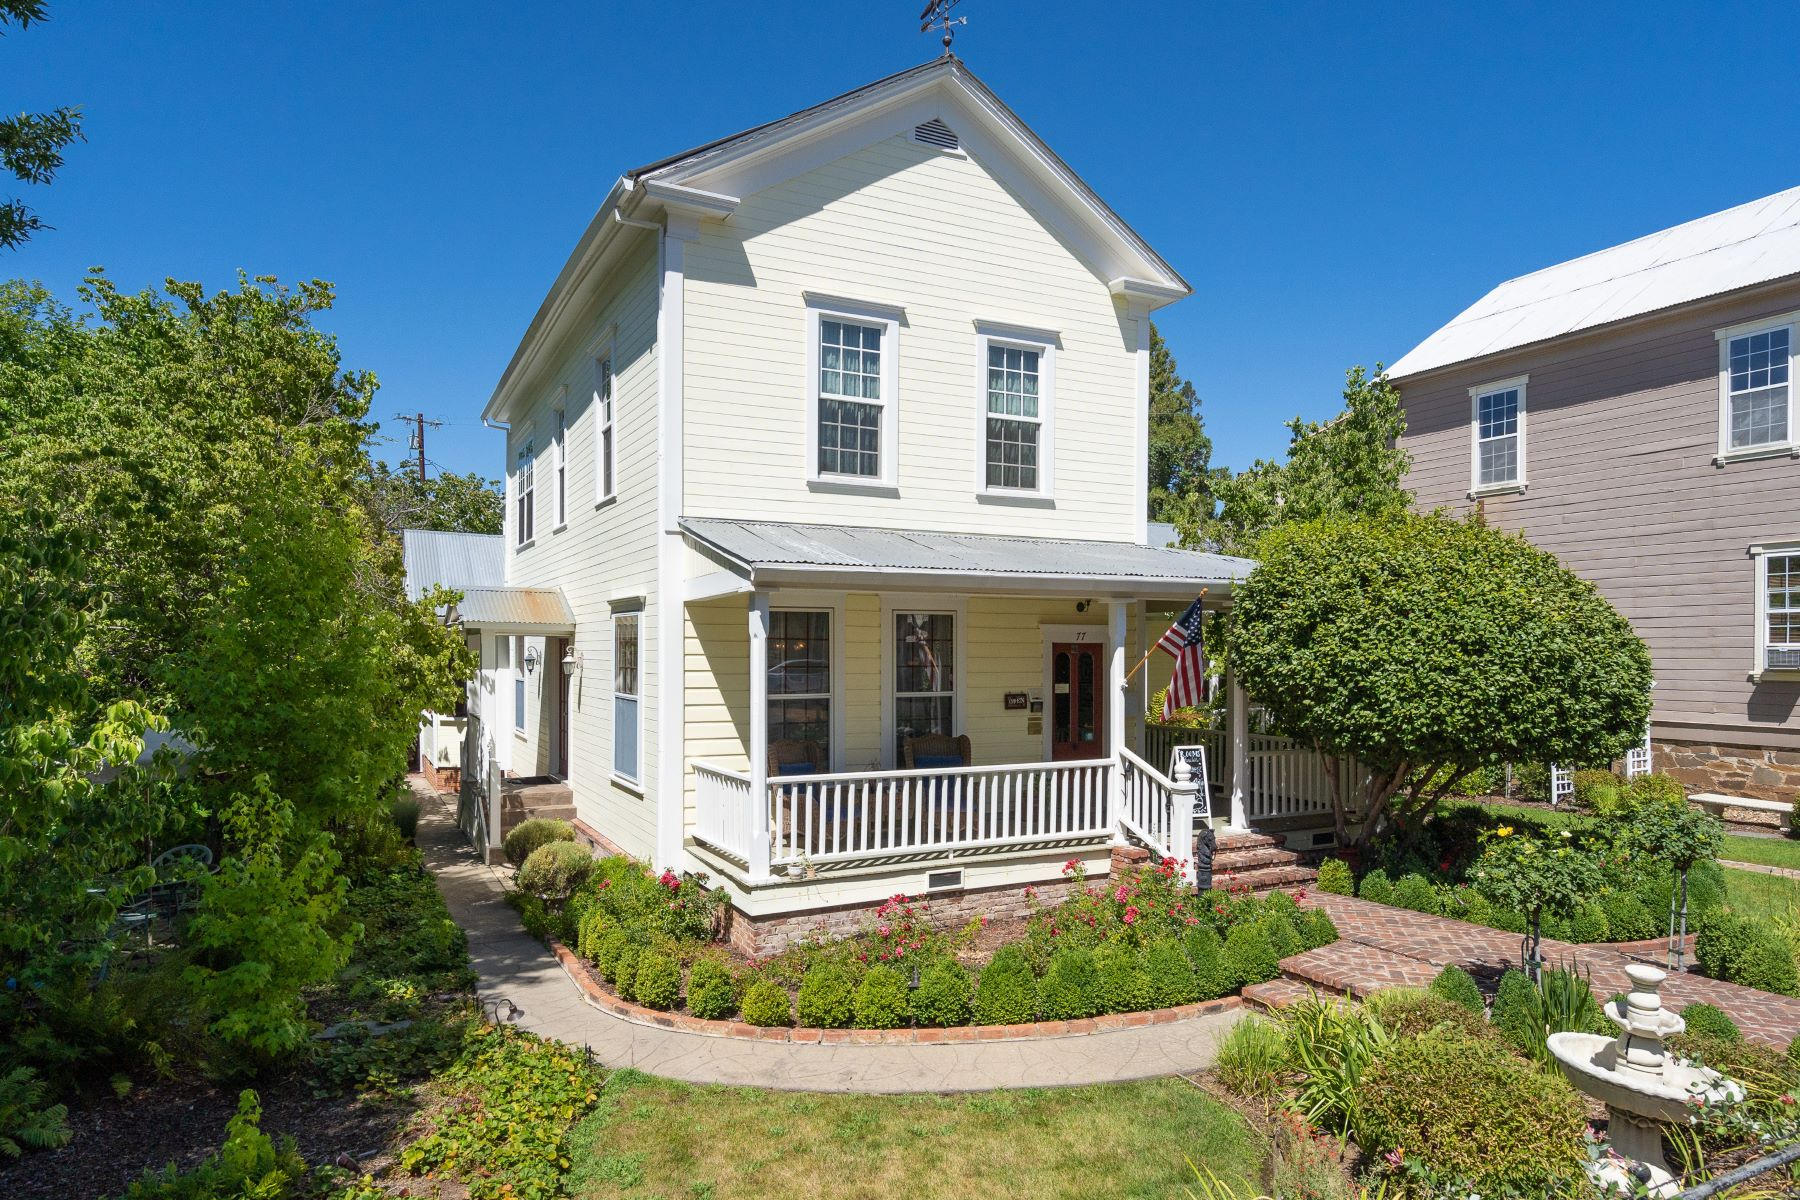 Single Family Homes for Sale at Welcome to the Foxes Inn! 77 Main Street Sutter Creek, California 95685 United States